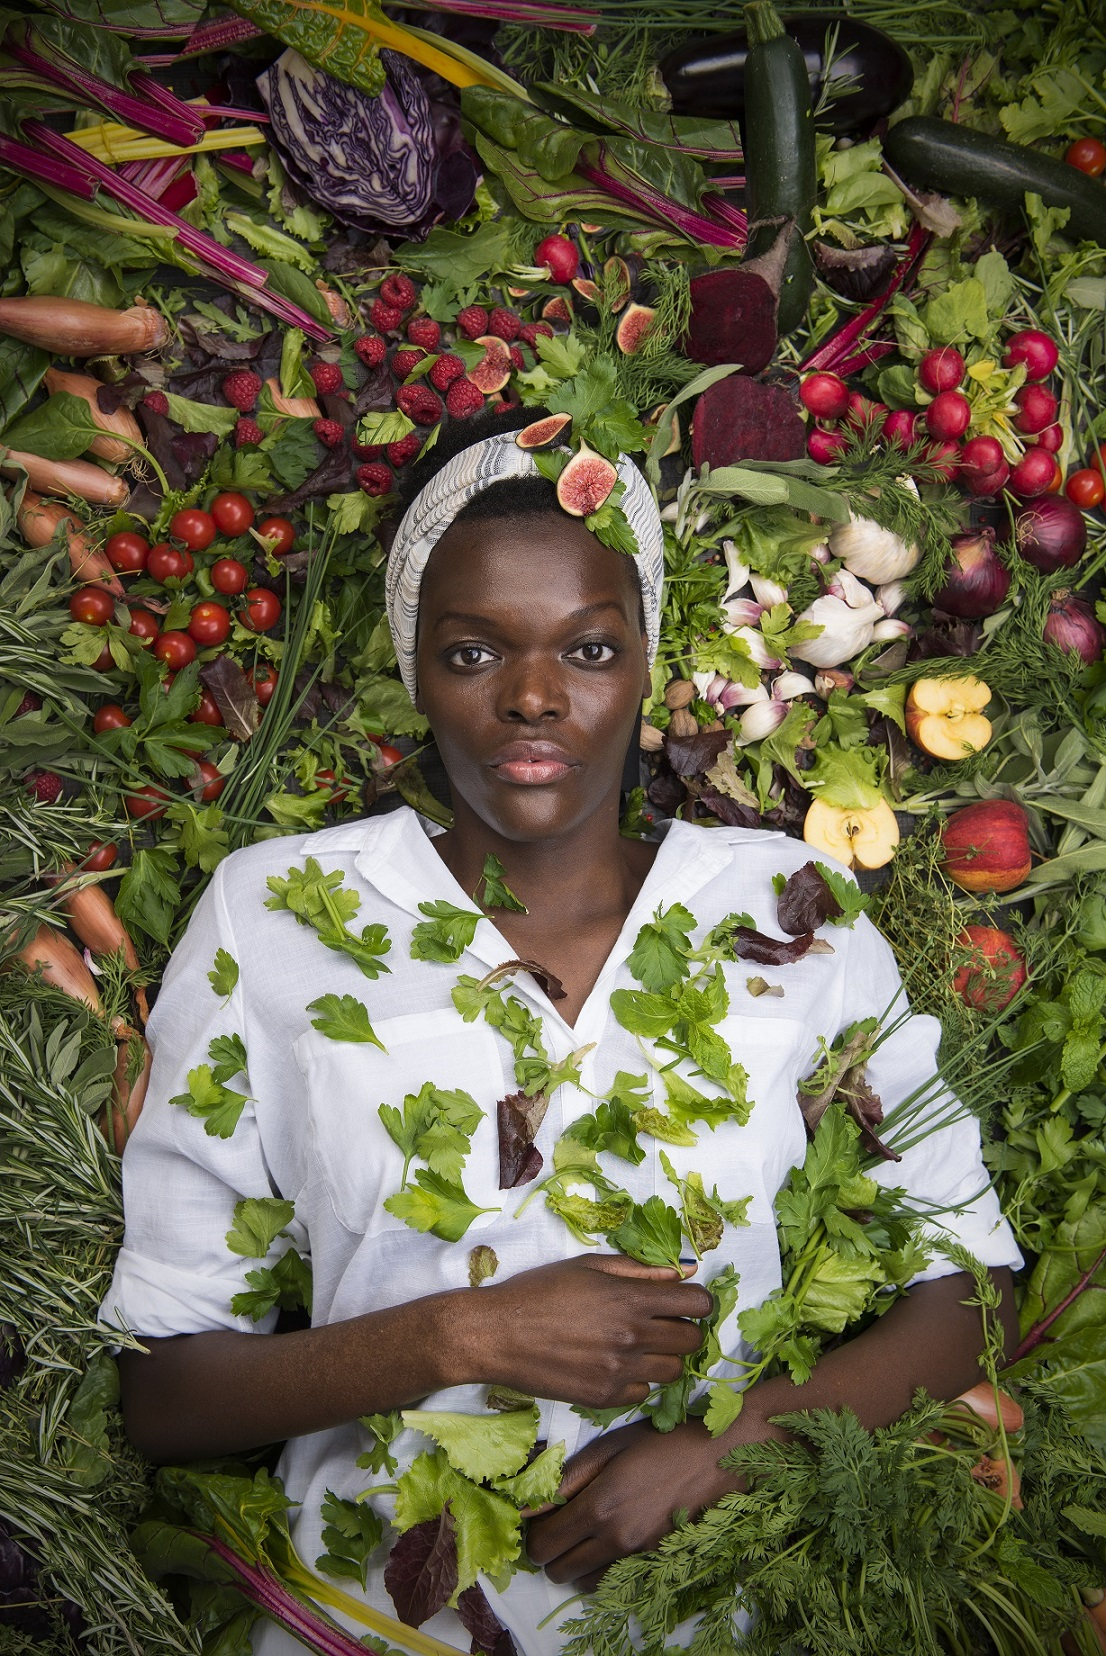 Sheila Atim as Babette in Babettes Feast. Photo by Hugo Glendinning